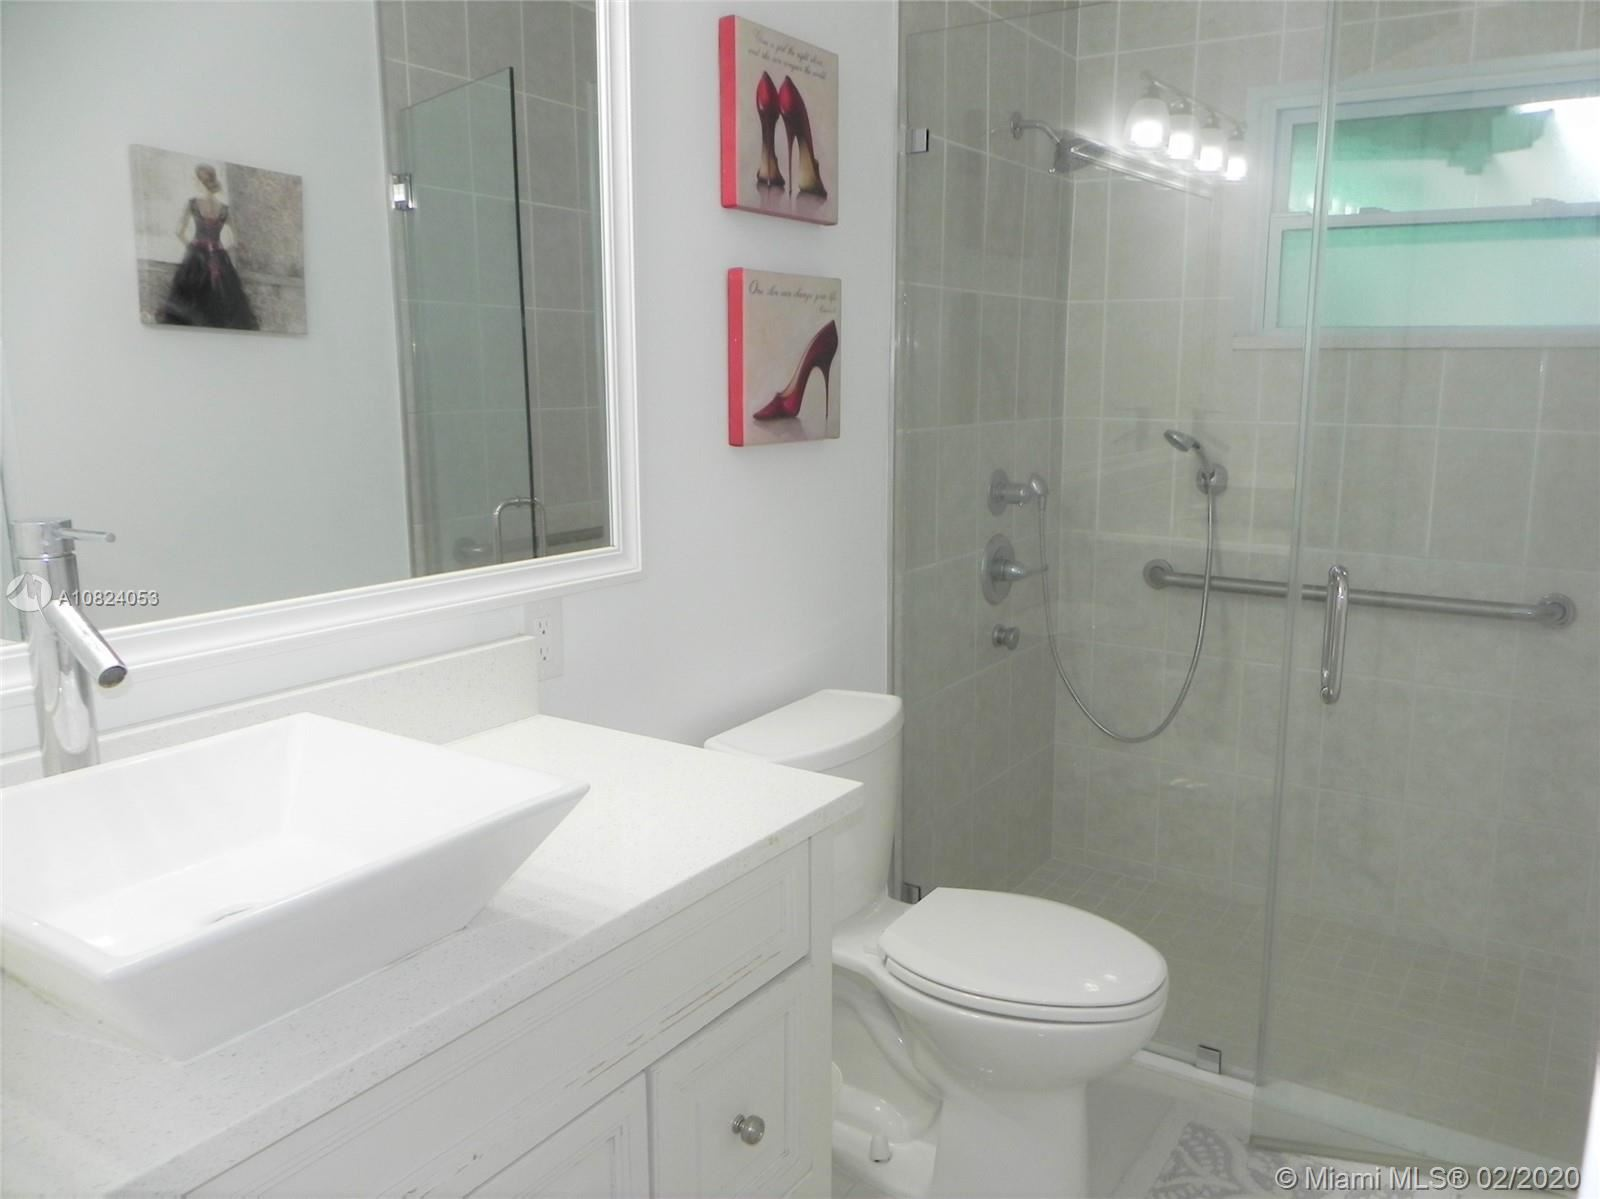 Photo 12 of Listing MLS a10824053 in 1531 Johnson St Hollywood FL 33020